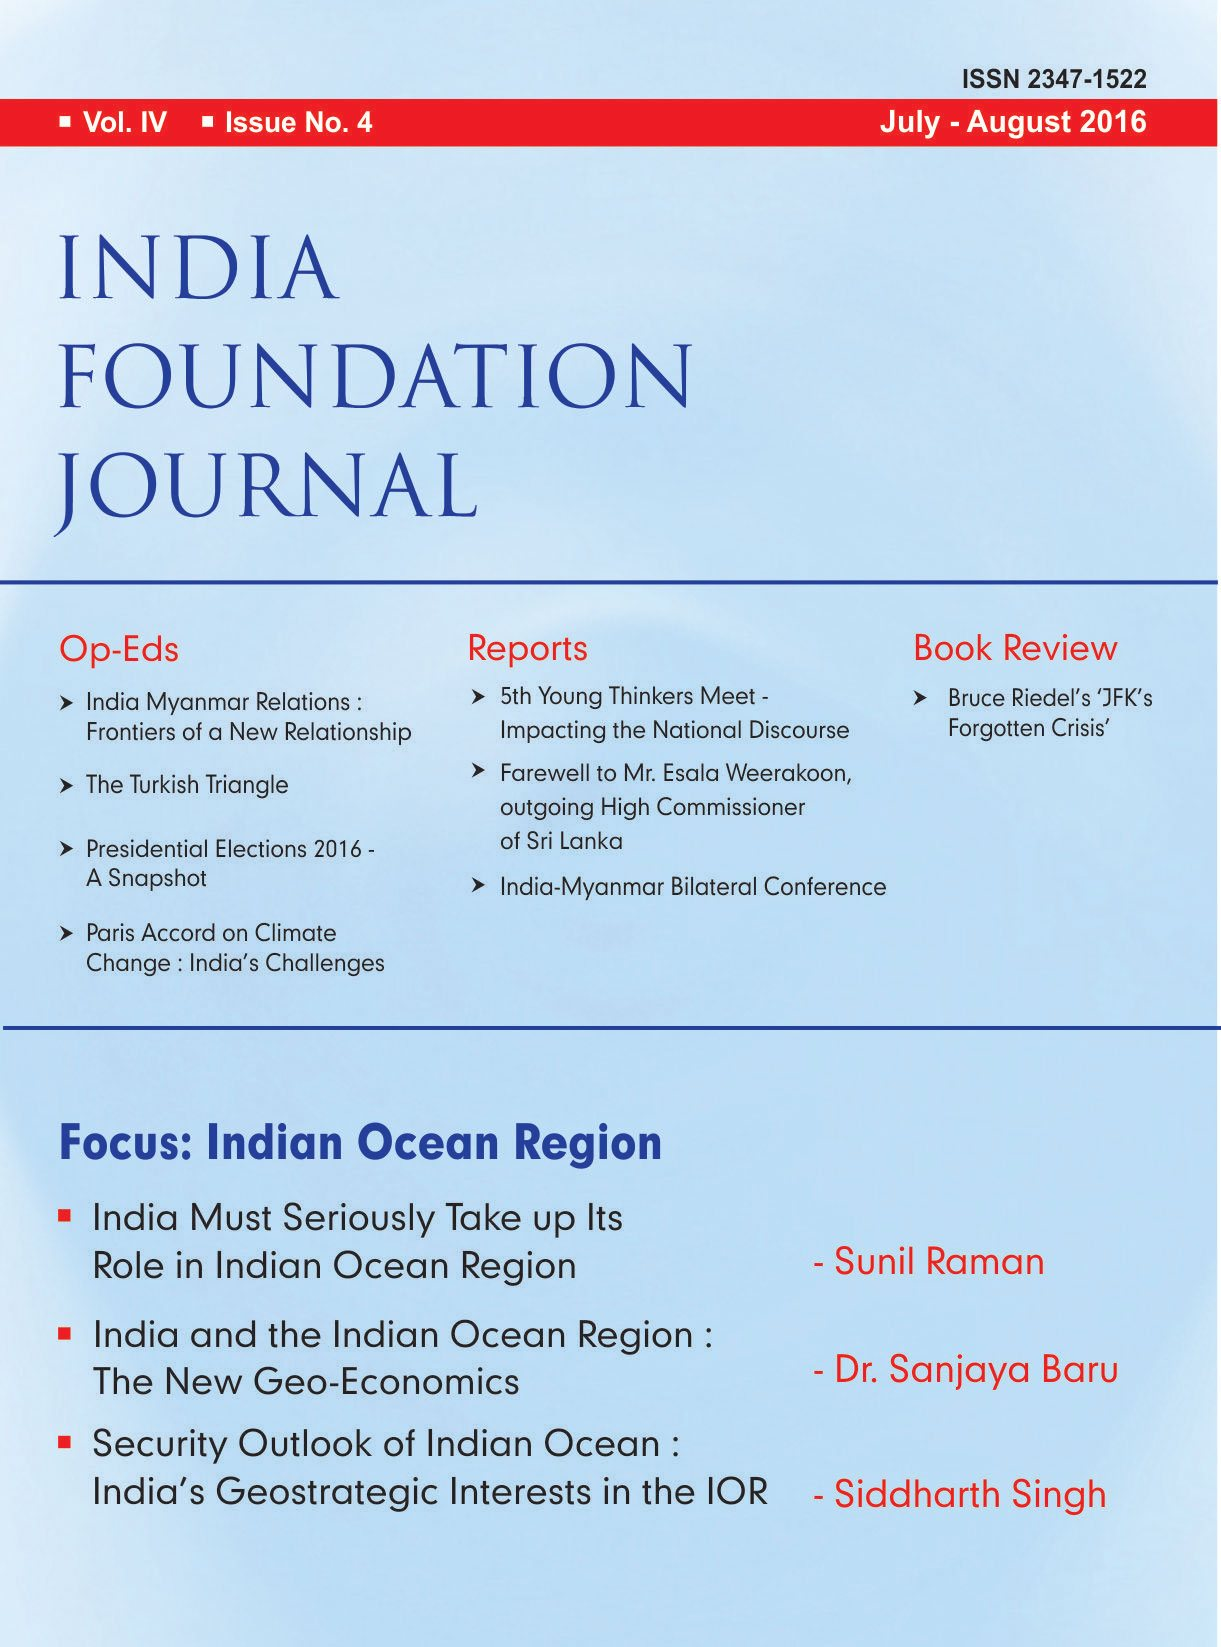 India Foundation Journal Issue 4 (Vol. IV)